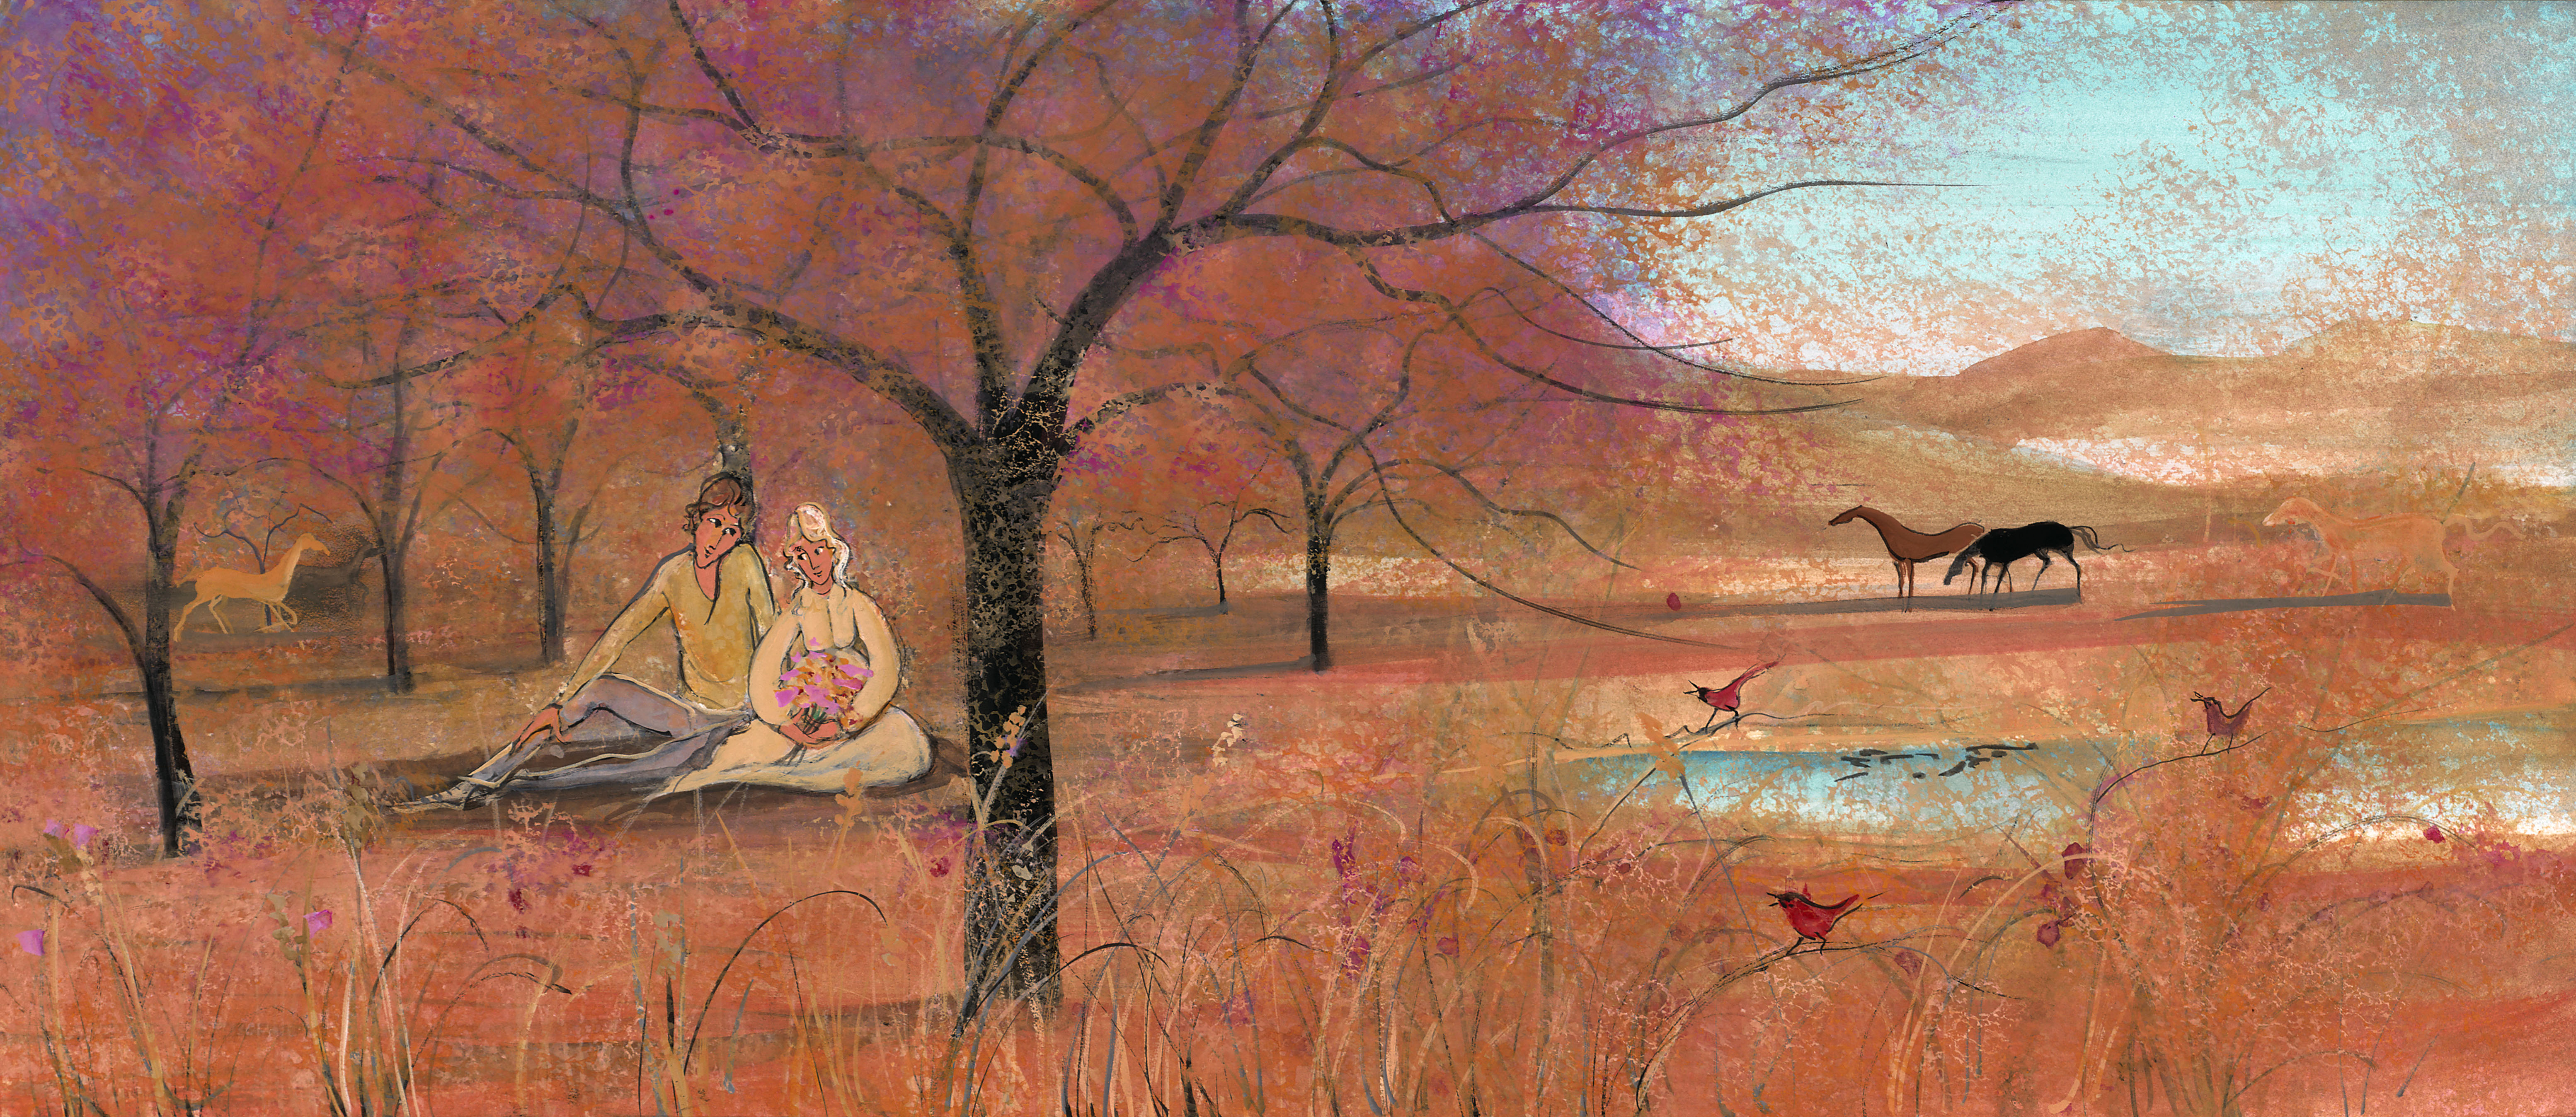 P. Buckley Moss to Release Virginia is for Lovers Painting at Framecraft